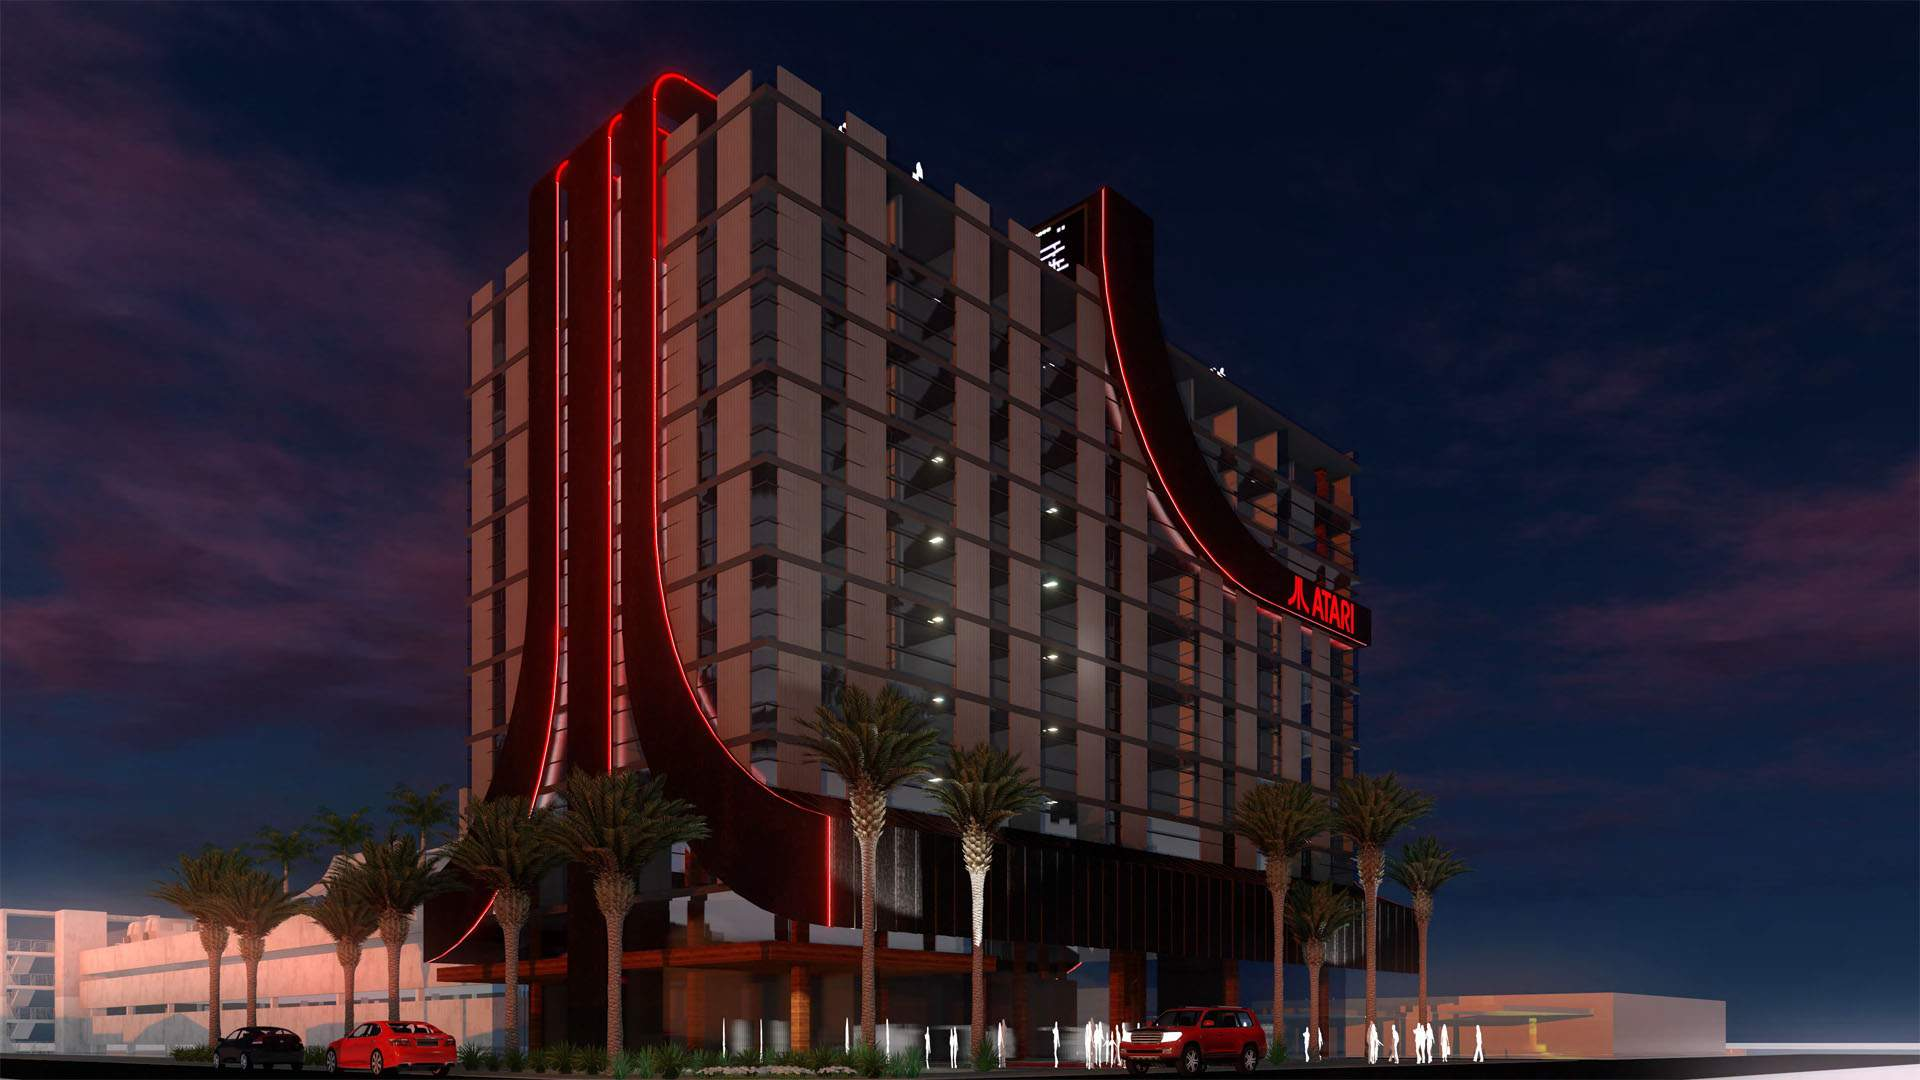 Atari Is Opening Its Own Chain of Video Game-Themed Hotels